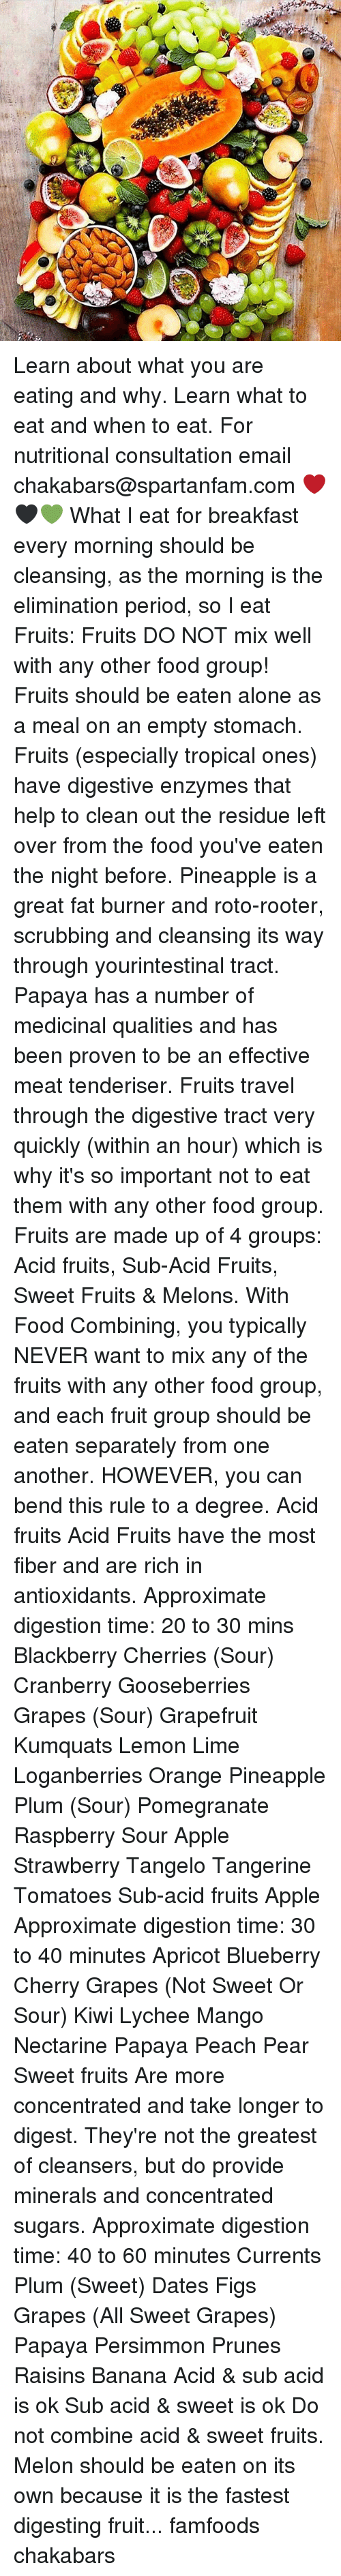 Being Alone, Apple, and BlackBerry: CSA. Learn about what you are eating and why. Learn what to eat and when to eat. For nutritional consultation email chakabars@spartanfam.com ❤️🖤💚 What I eat for breakfast every morning should be cleansing, as the morning is the elimination period, so I eat Fruits: Fruits DO NOT mix well with any other food group! Fruits should be eaten alone as a meal on an empty stomach. Fruits (especially tropical ones) have digestive enzymes that help to clean out the residue left over from the food you've eaten the night before. Pineapple is a great fat burner and roto-rooter, scrubbing and cleansing its way through yourintestinal tract. Papaya has a number of medicinal qualities and has been proven to be an effective meat tenderiser. Fruits travel through the digestive tract very quickly (within an hour) which is why it's so important not to eat them with any other food group. Fruits are made up of 4 groups: Acid fruits, Sub-Acid Fruits, Sweet Fruits & Melons. With Food Combining, you typically NEVER want to mix any of the fruits with any other food group, and each fruit group should be eaten separately from one another. HOWEVER, you can bend this rule to a degree. Acid fruits Acid Fruits have the most fiber and are rich in antioxidants. Approximate digestion time: 20 to 30 mins Blackberry Cherries (Sour) Cranberry Gooseberries Grapes (Sour) Grapefruit Kumquats Lemon Lime Loganberries Orange Pineapple Plum (Sour) Pomegranate Raspberry Sour Apple Strawberry Tangelo Tangerine Tomatoes Sub-acid fruits Apple Approximate digestion time: 30 to 40 minutes Apricot Blueberry Cherry Grapes (Not Sweet Or Sour) Kiwi Lychee Mango Nectarine Papaya Peach Pear Sweet fruits Are more concentrated and take longer to digest. They're not the greatest of cleansers, but do provide minerals and concentrated sugars. Approximate digestion time: 40 to 60 minutes Currents Plum (Sweet) Dates Figs Grapes (All Sweet Grapes) Papaya Persimmon Prunes Raisins Banana Acid & sub